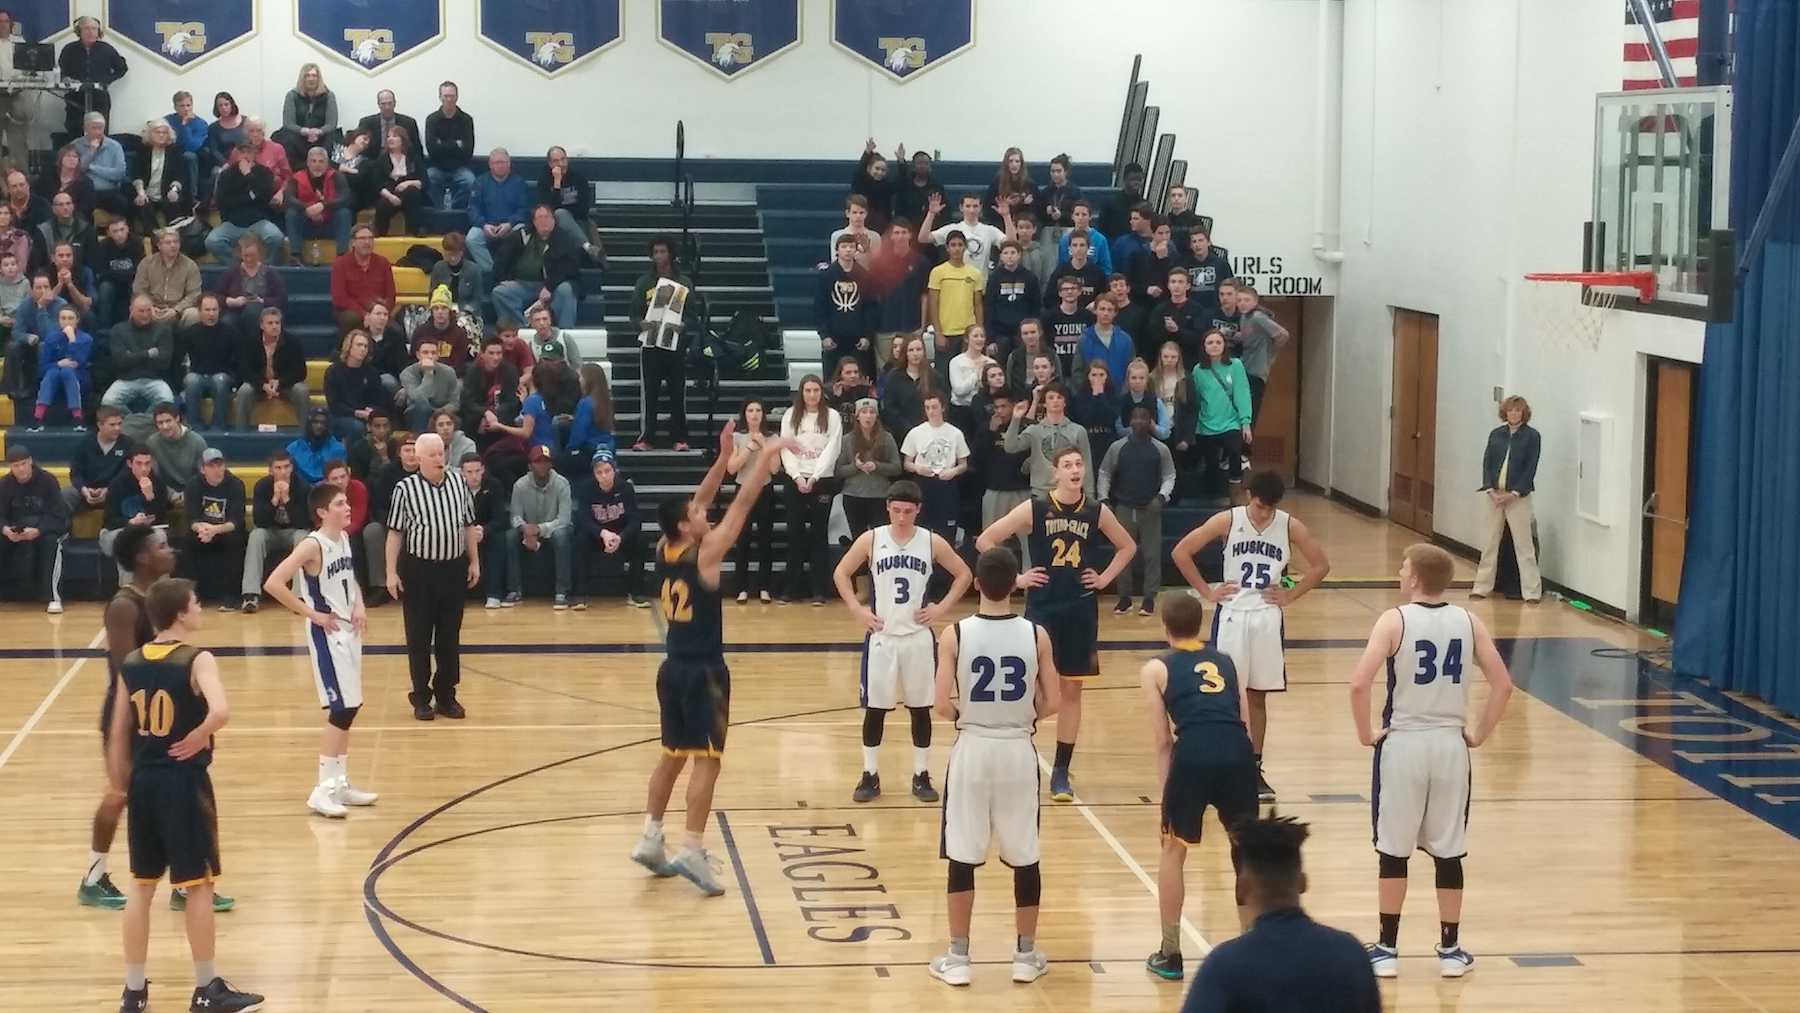 Charlie Jacob ices the game with two free throws.